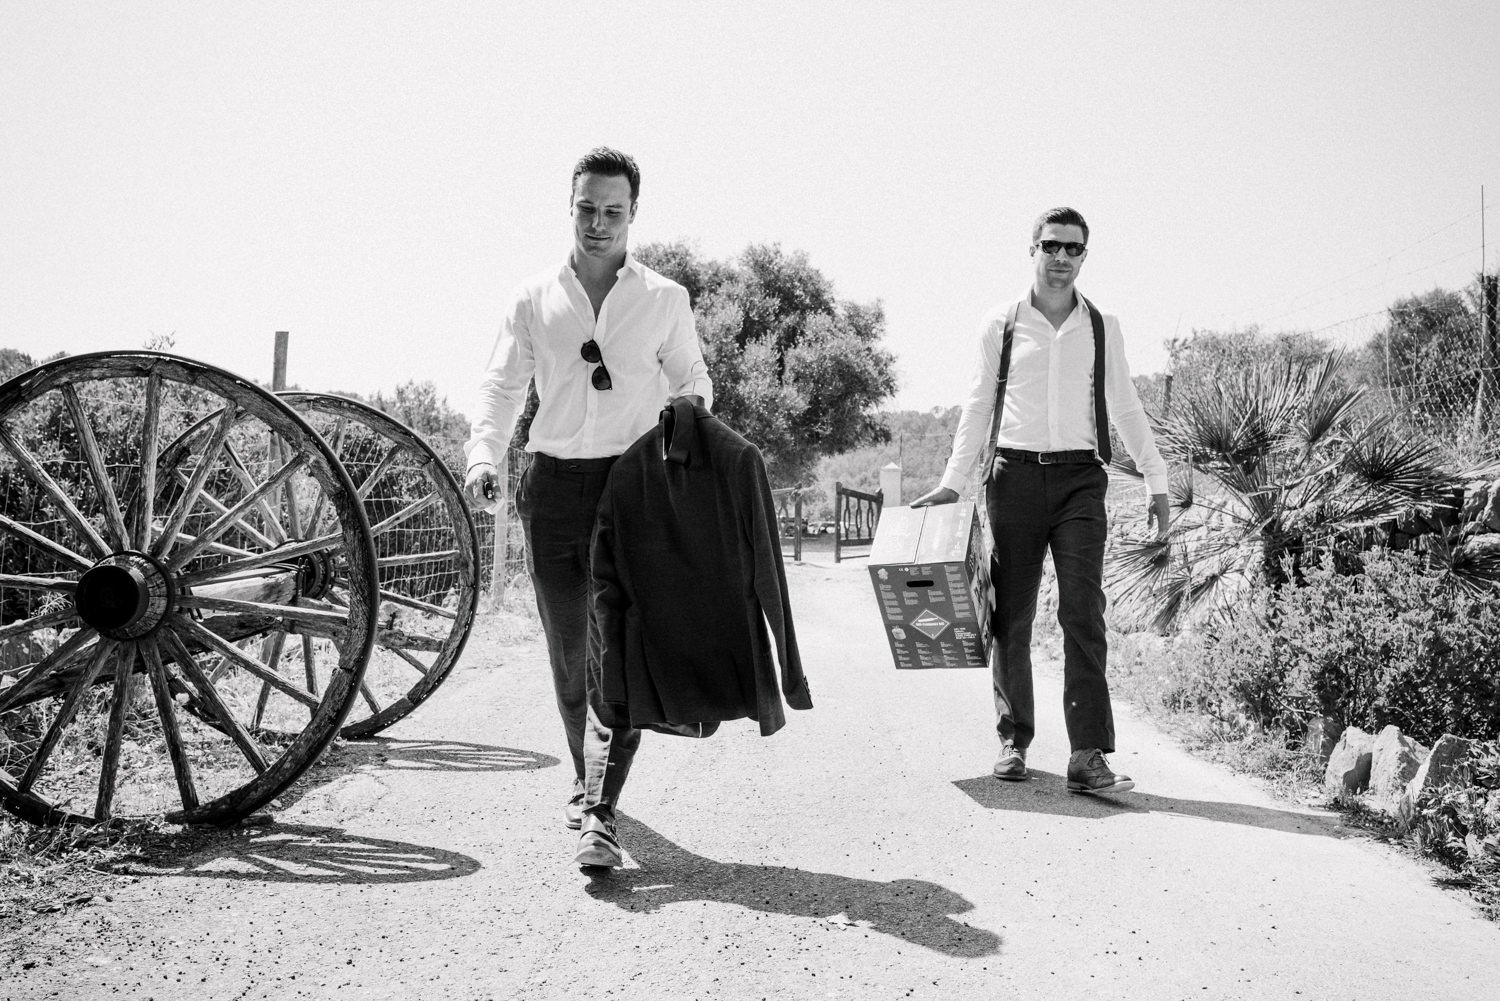 M&S suits with Charles Tyritt shirts as warn by groom and groomsmen Mallorca wedding photography